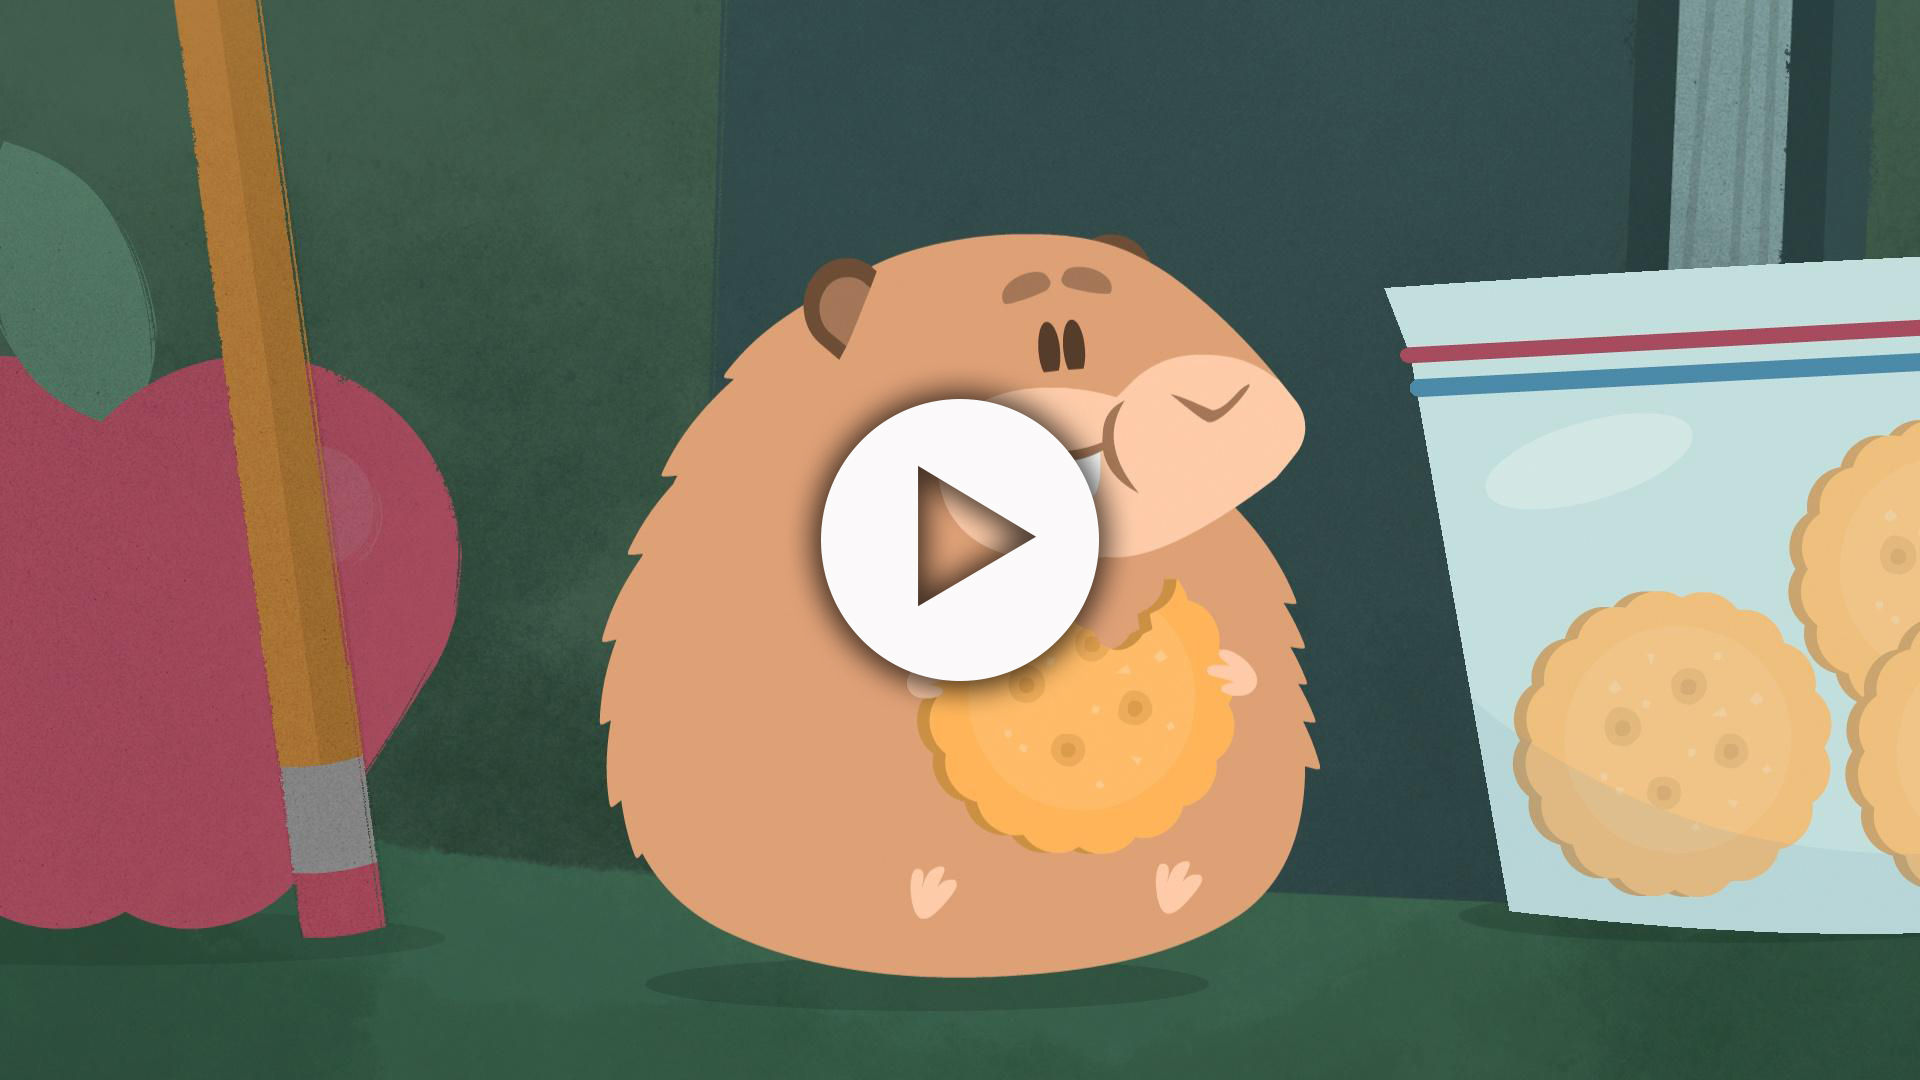 Hammie the Hampster, an animated character, eating a cracker or cookie with more in a zip bag nearby.